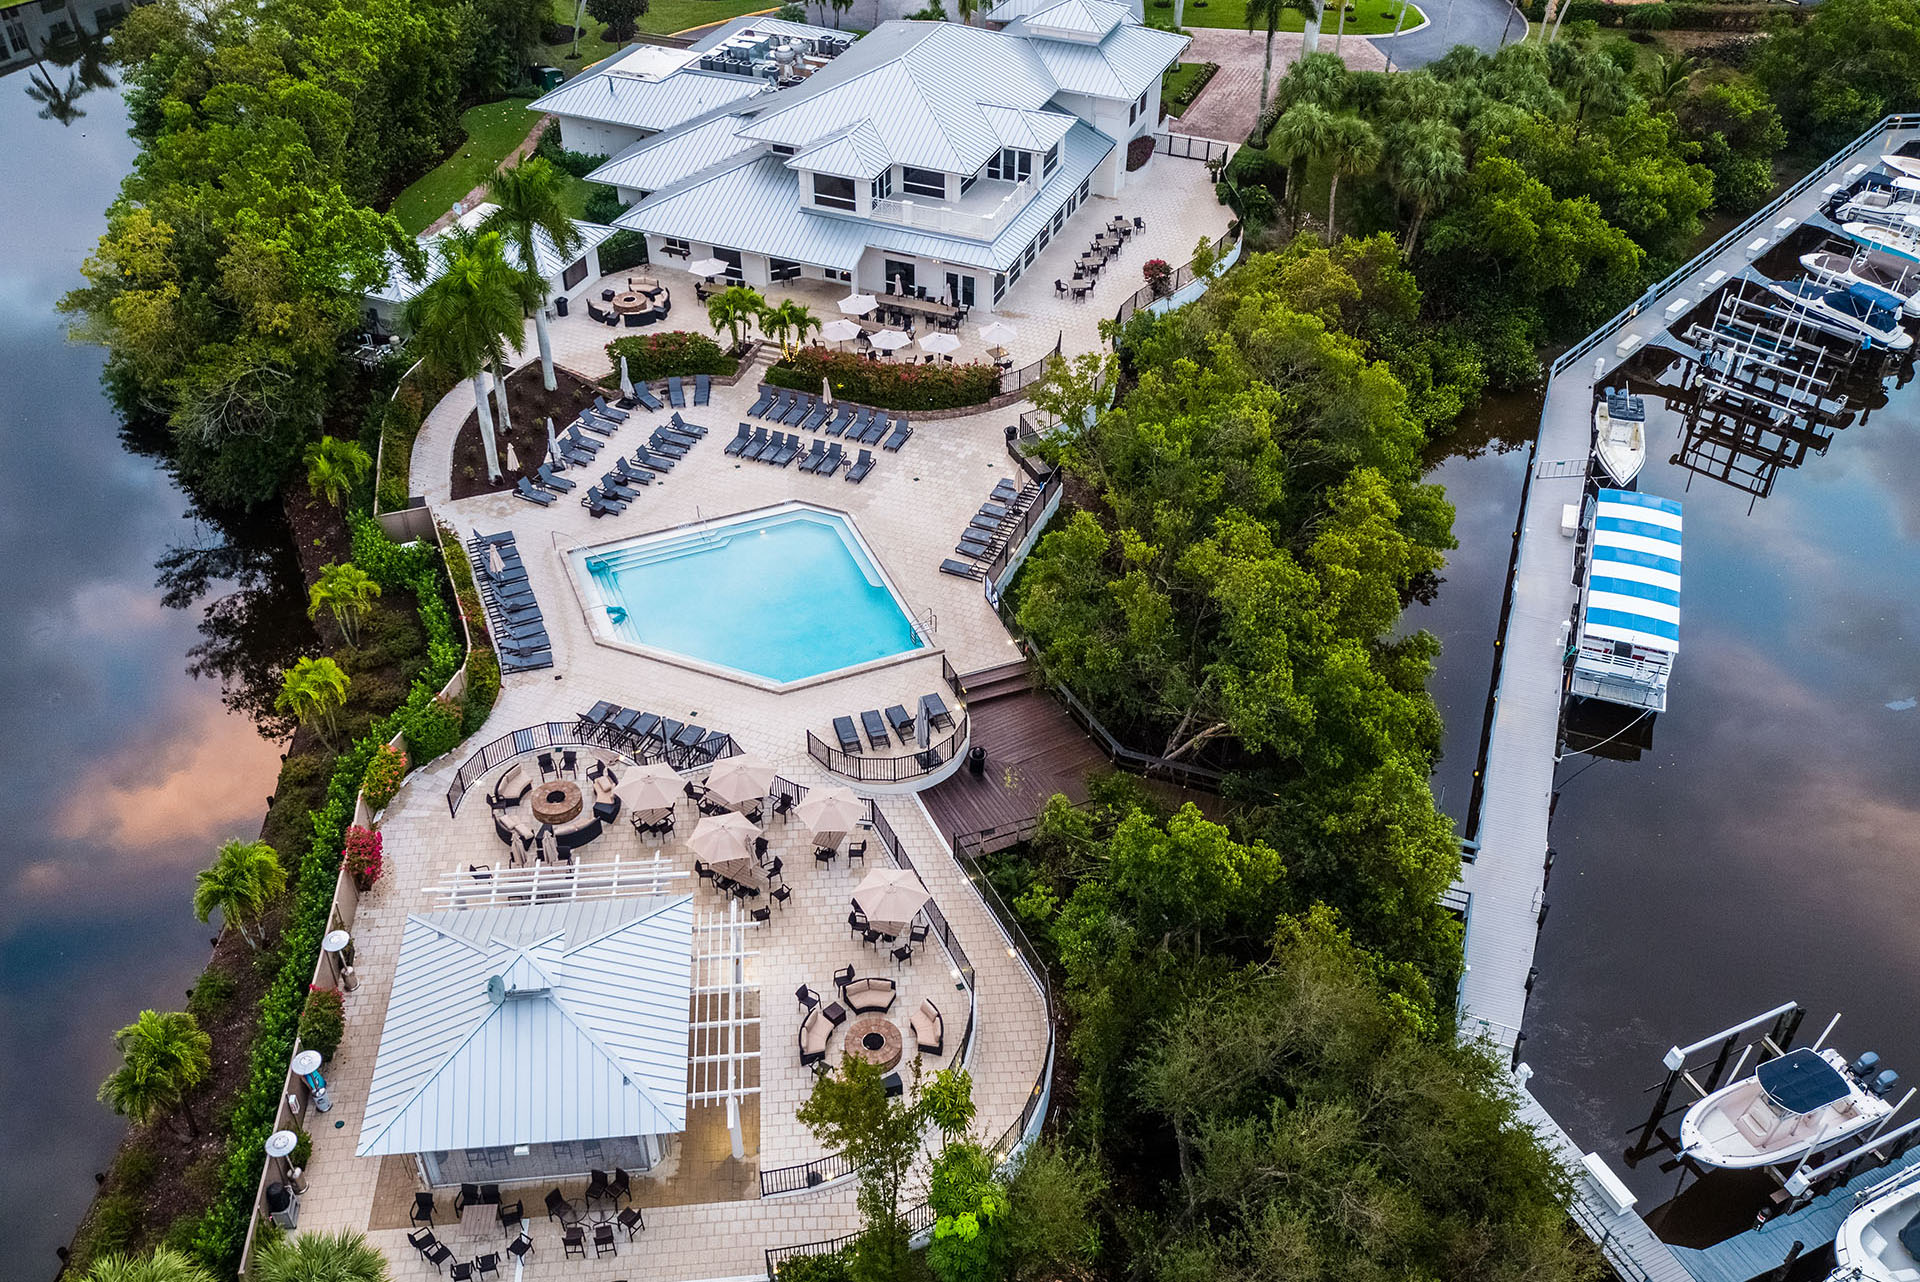 Bird's eye view of the pool and waterfront at Tarpon Cove Yacht & Racquet Club